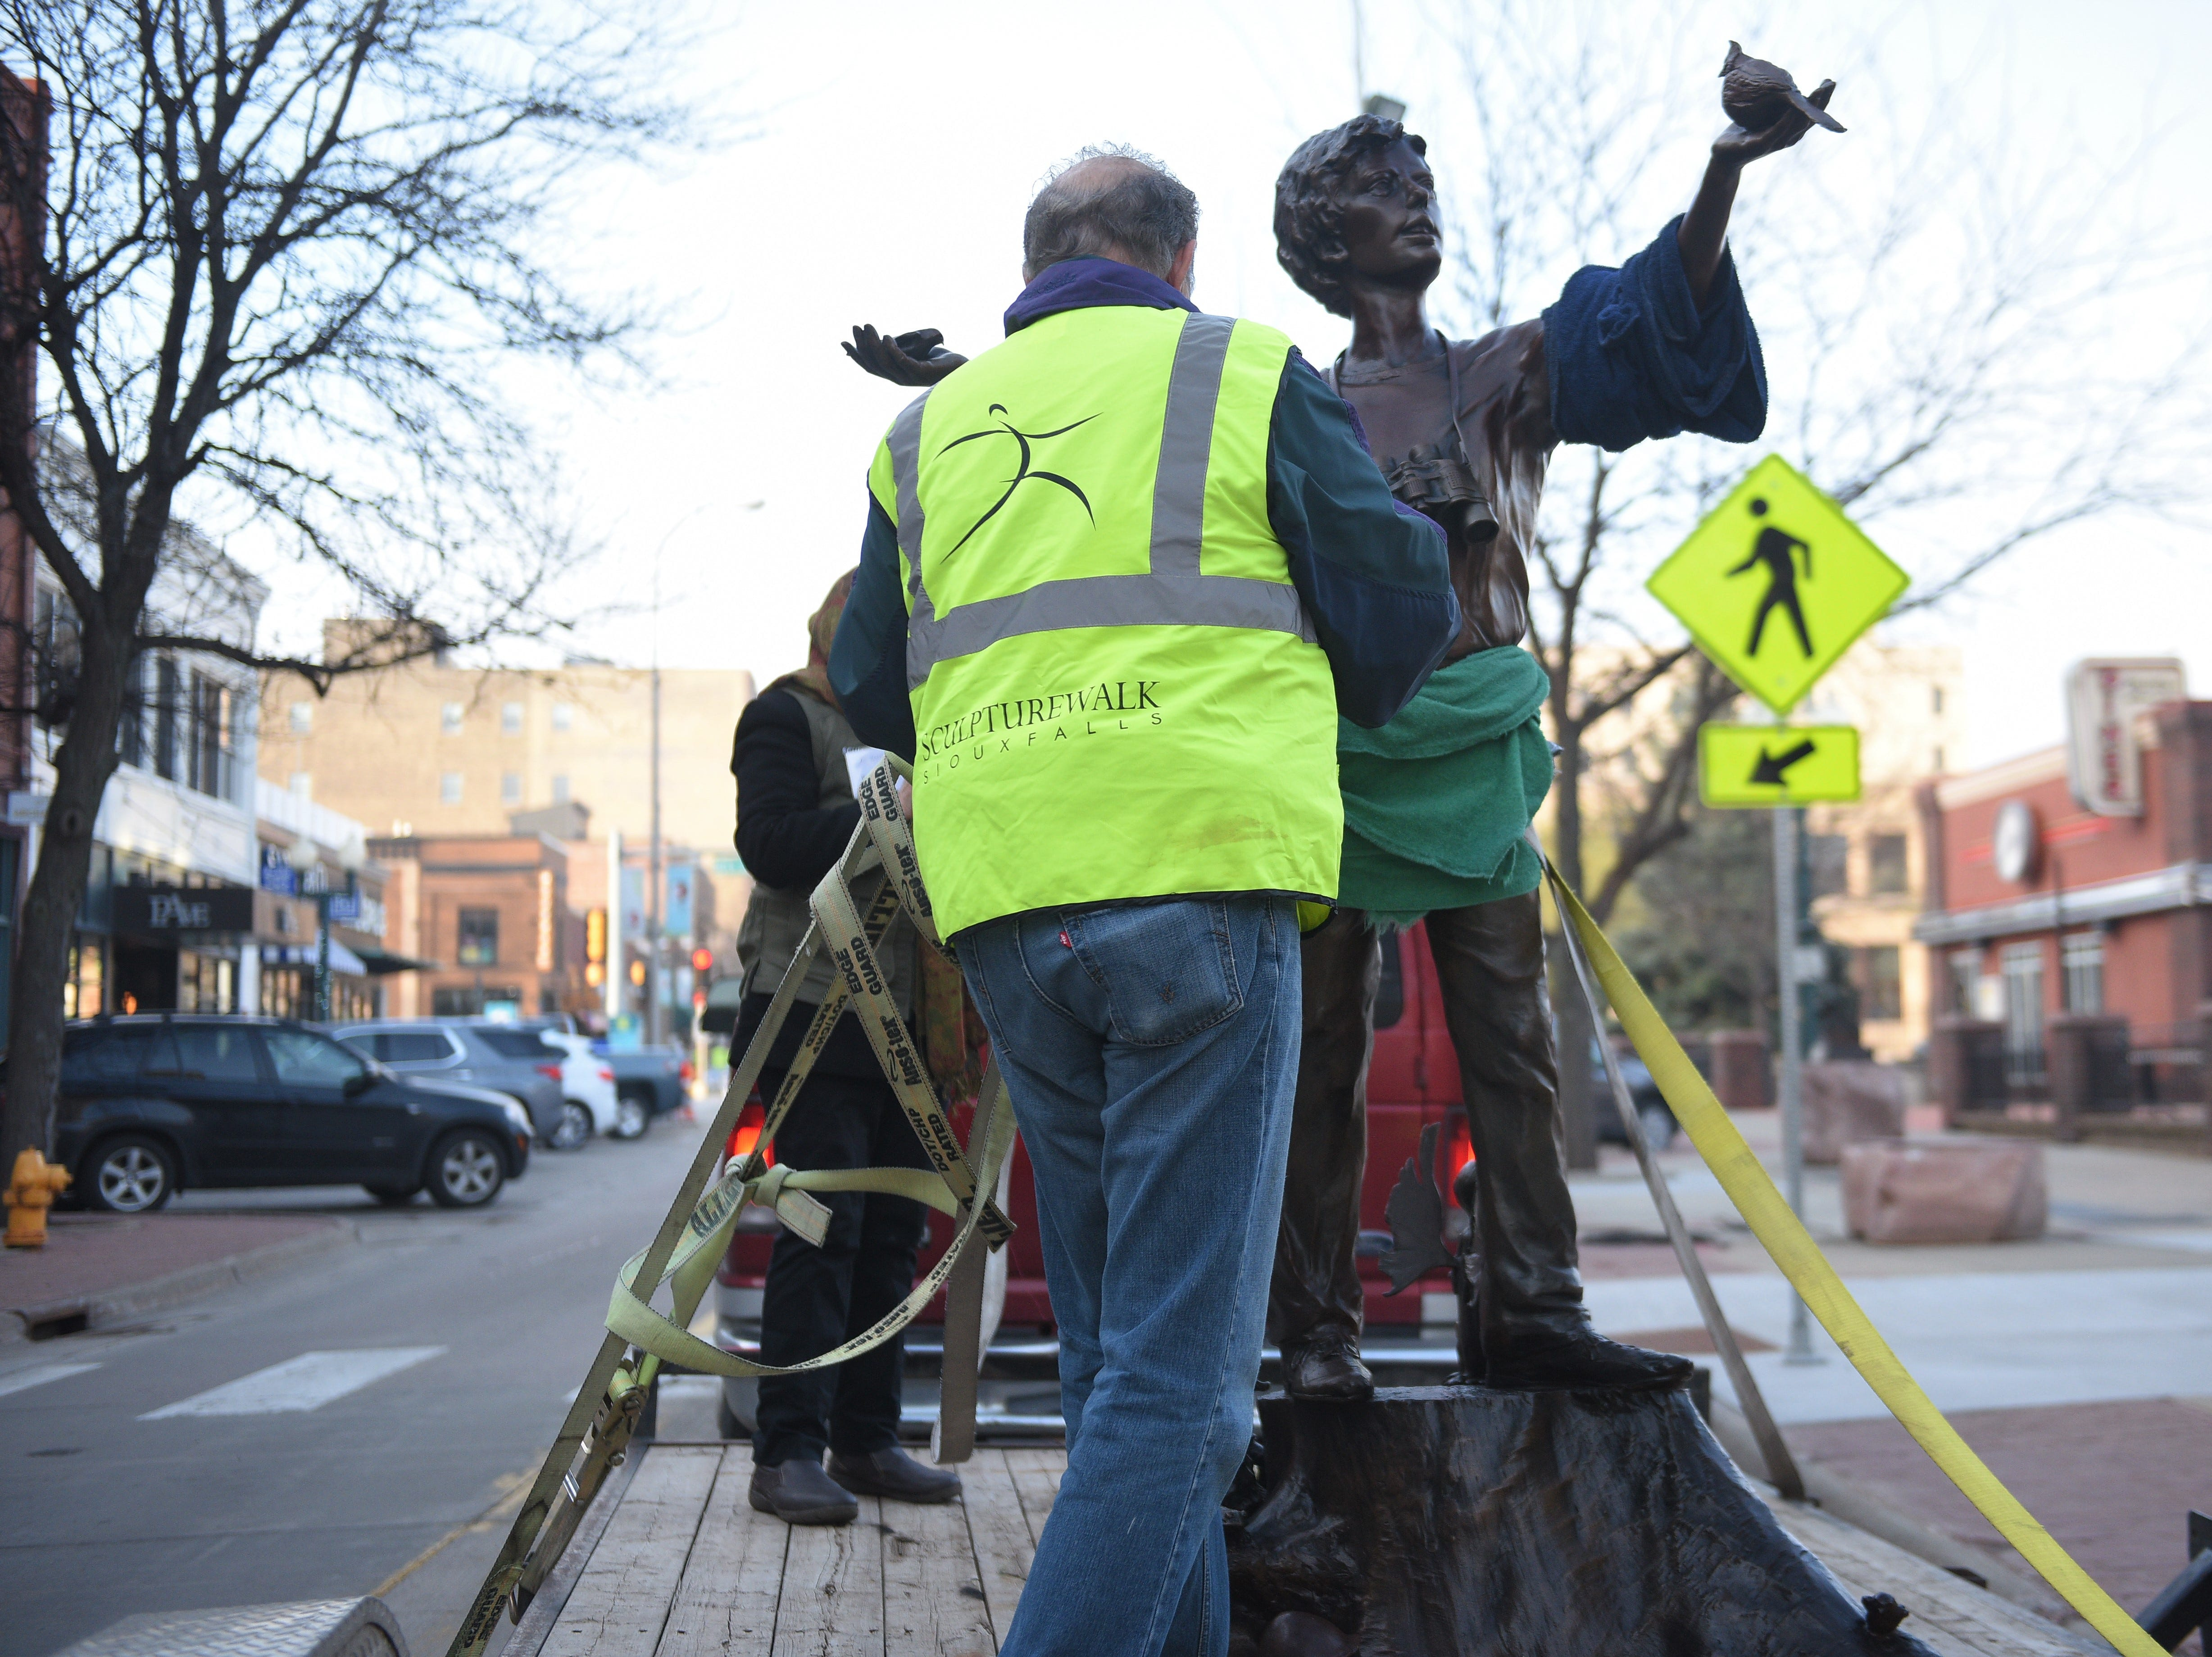 SculptureWalk Sioux Falls crews unload Bobbie Carlyle's sculpture to install it on Phillips Avenue Saturday, May 4, 2019, as part of the 16th Annual SculptureWalk Sioux Falls.